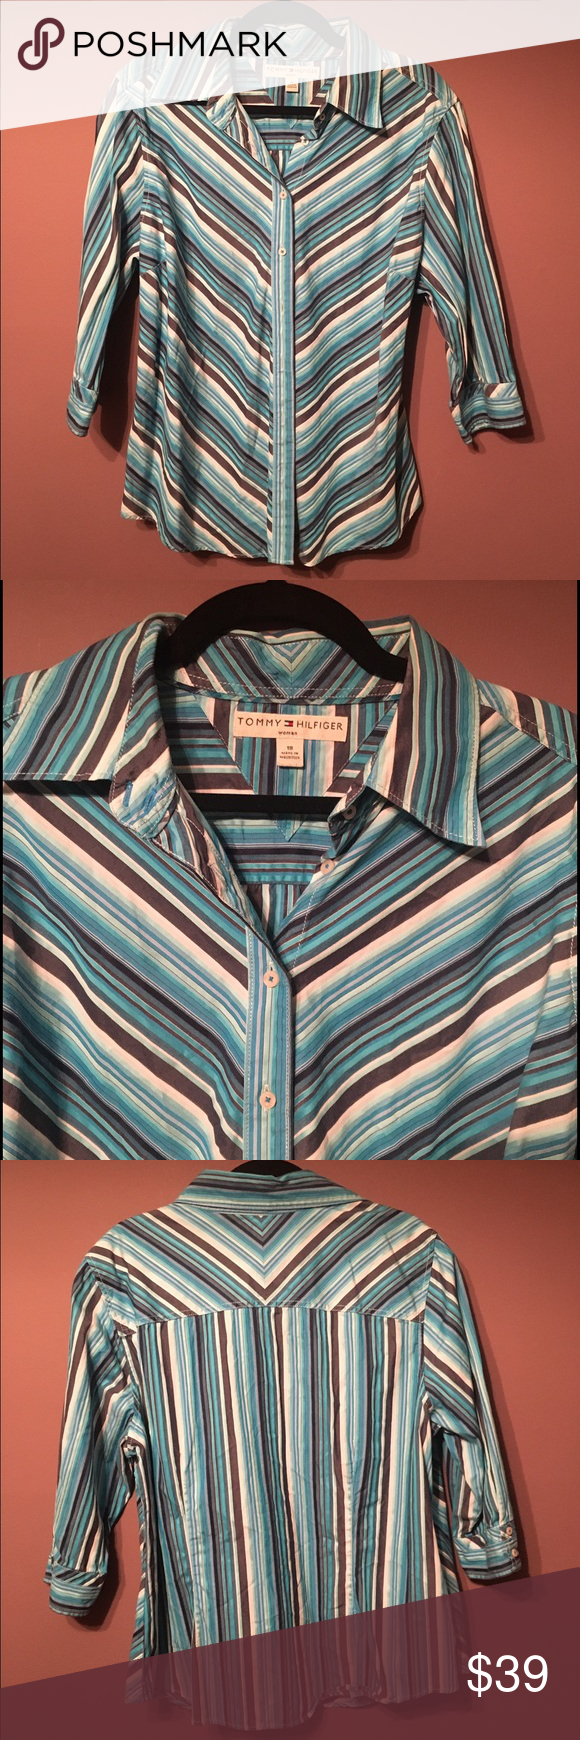 ♨️♨️ Tommy Hilfiger Shirt Nice condition. Approximate measurements are 30 inches in length, 26 inches in width along the bottom, 26 inches pit to pit, 17 inches arm length measured from the shoulder. Hundred percent cotton. Wash and tumble dry. Tommy Hilfiger Tops Button Down Shirts